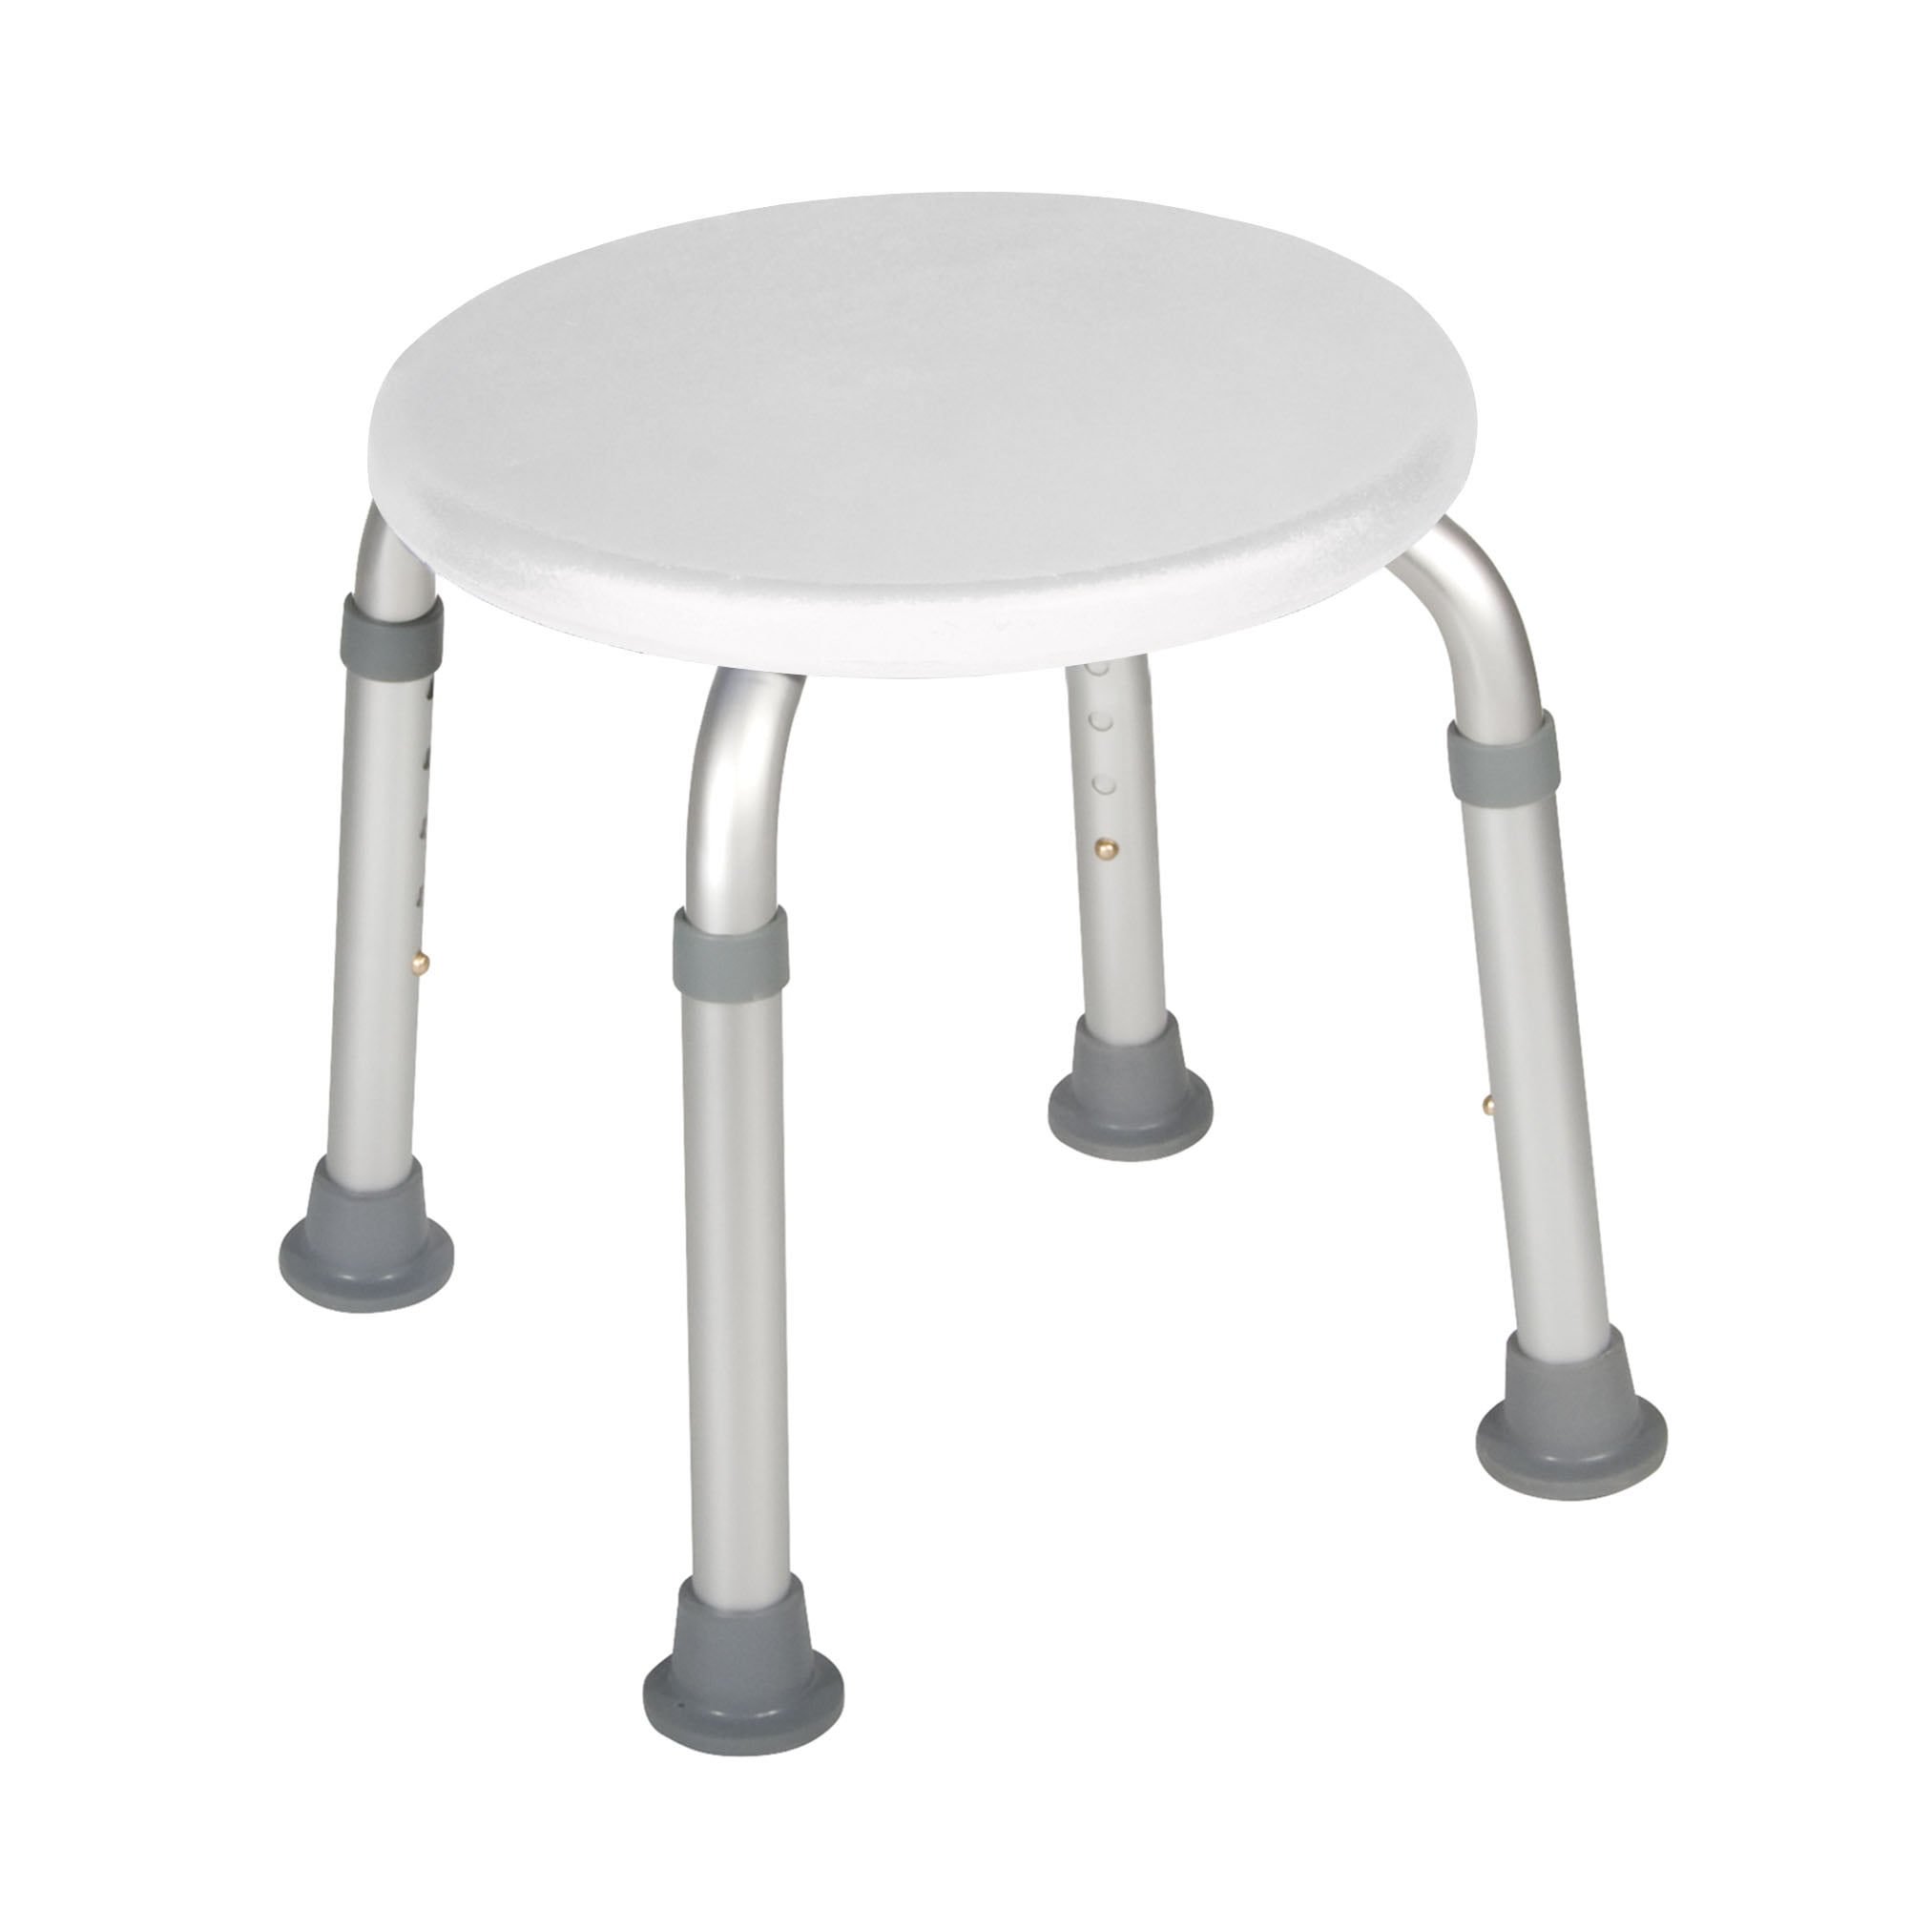 Magnificent Drive Medical Adjustable Height Bath Stool White Walmart Com Unemploymentrelief Wooden Chair Designs For Living Room Unemploymentrelieforg